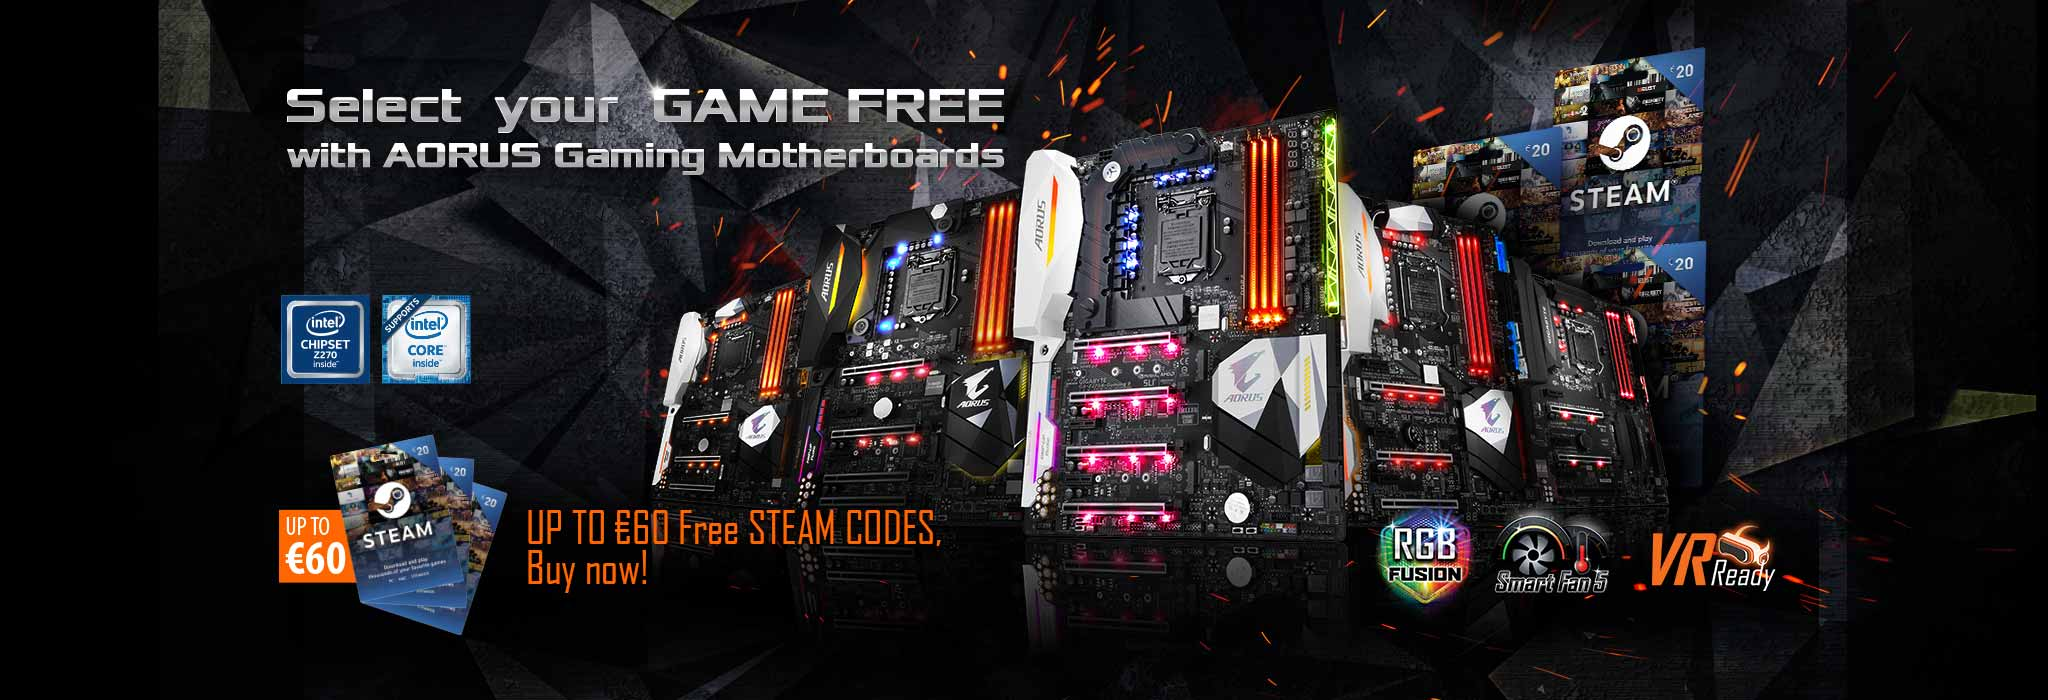 Aorus Gaming Motherboards Come With Fun Up To 60 Free Steam Codes